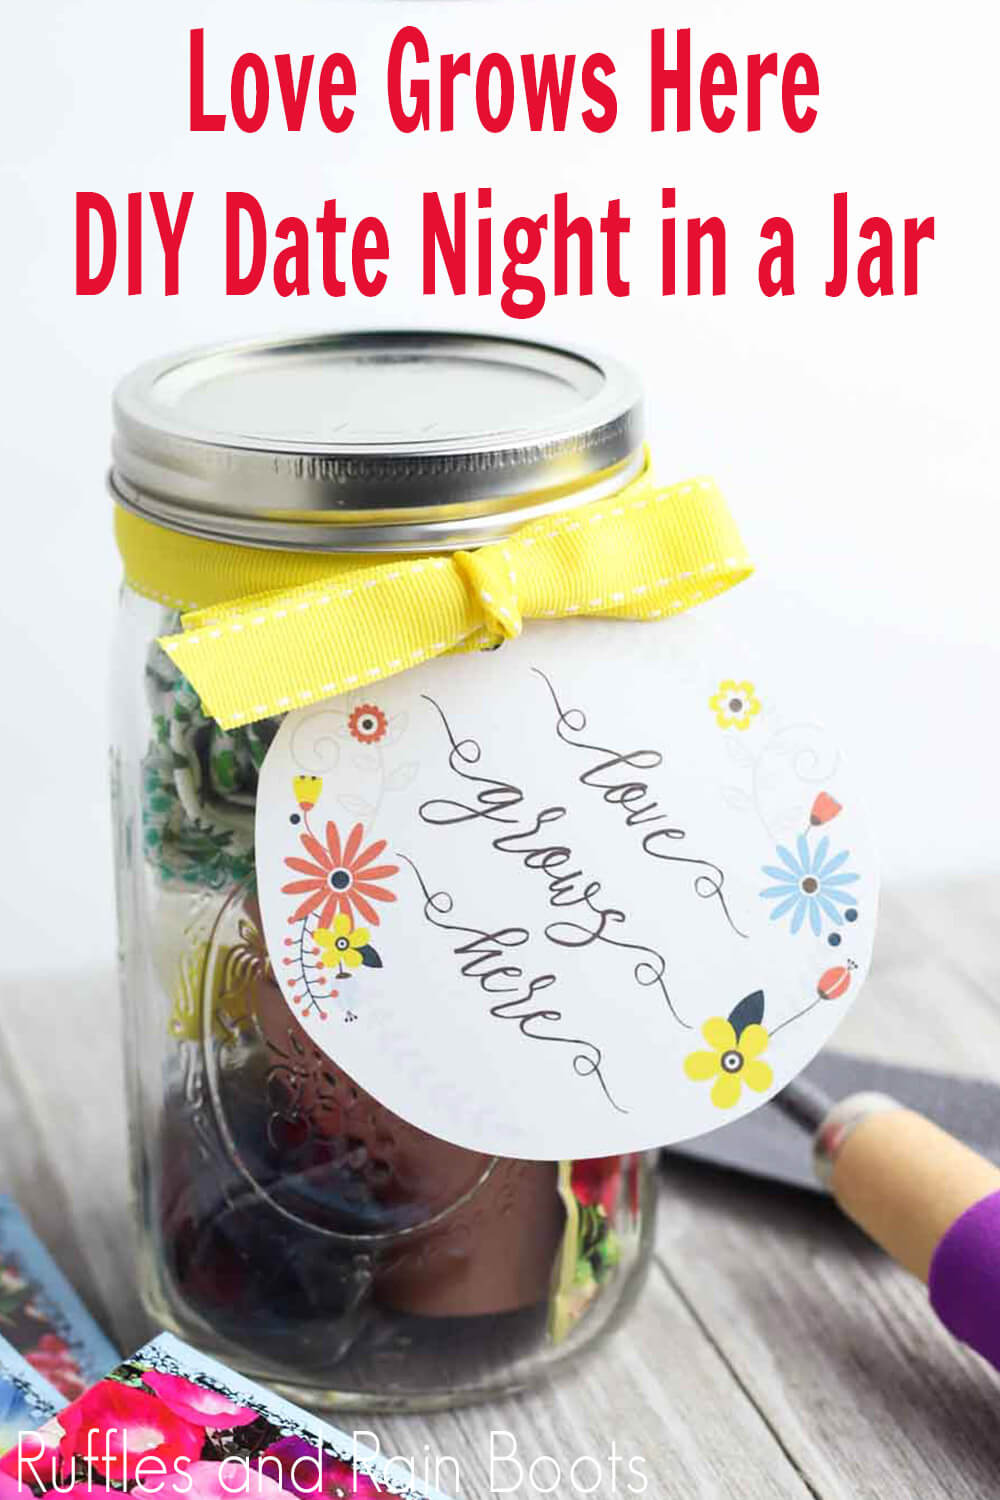 flower date night in a jar with text which reads love grows here diy date night in a jar